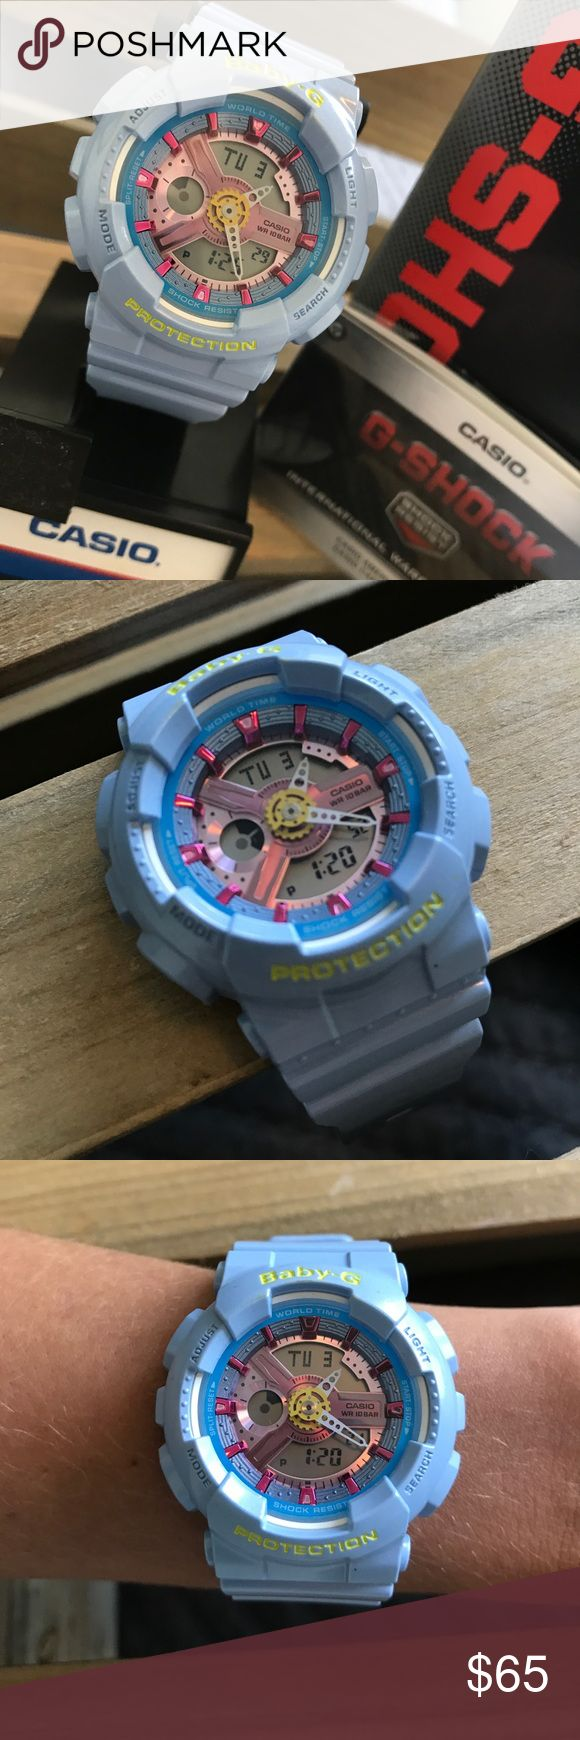 Brand new! Baby-G shock watch ⏱ Perfect condition! Still in box with user guide. These are the best watches! I have a solid black one that I wear daily. Watch face shows the day of the week, digital clock along with analog. G-Shock Accessories Watches